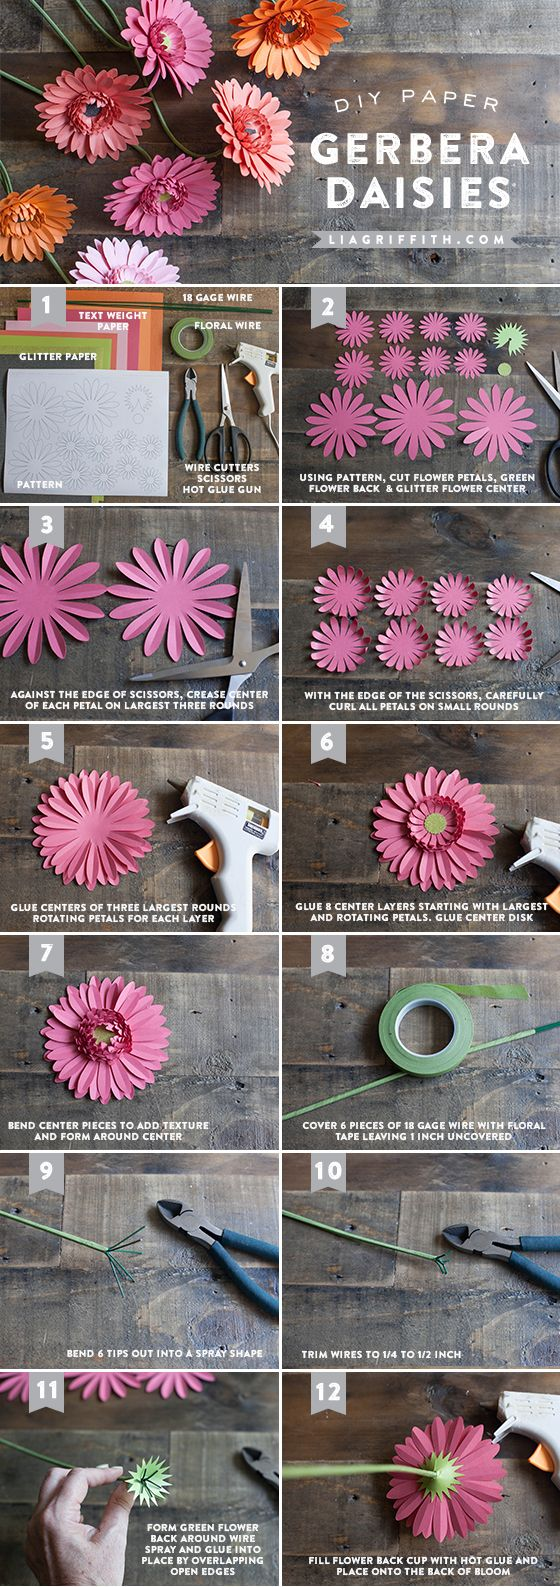 Diy gerbera daisy paper flower gerbera gerbera daisies and flower make these gorgeous paper dhlflorist Image collections